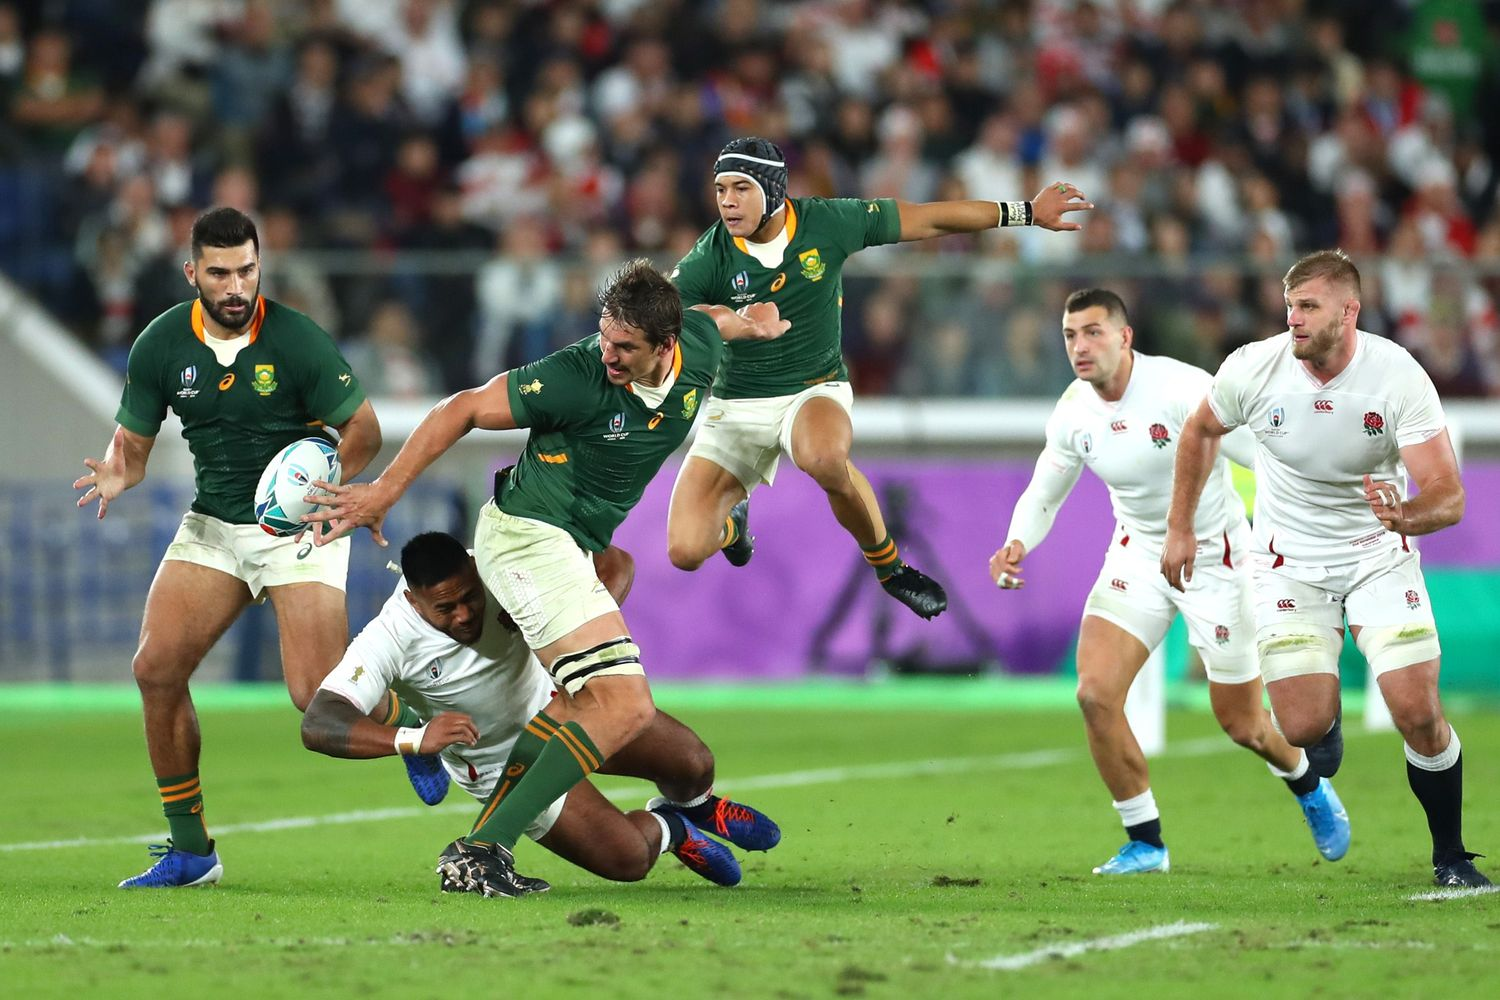 England v South Africa - Rugby World Cup 2019 Final